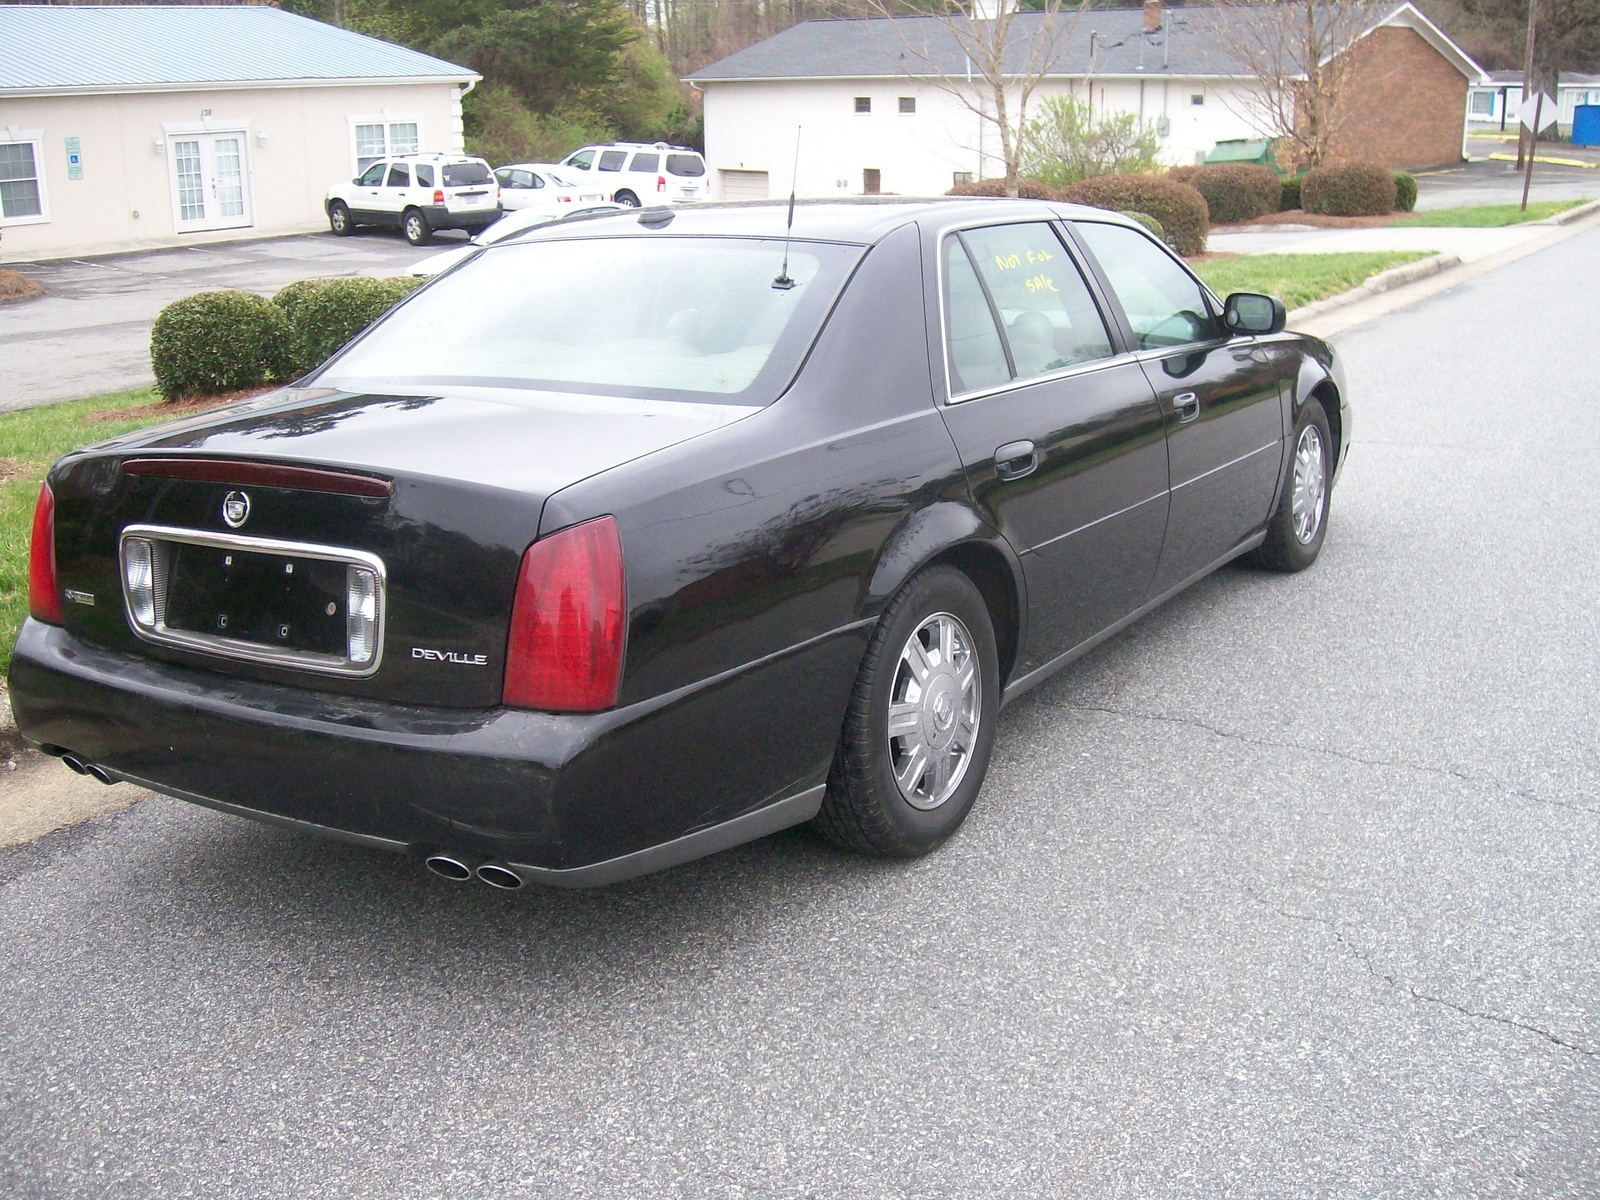 2004 Cadillac DeVille Service Repair Manuals PDF Download. Front Seats  Passenger Seat may passenger Every found by our community shared Stereo  System more ...